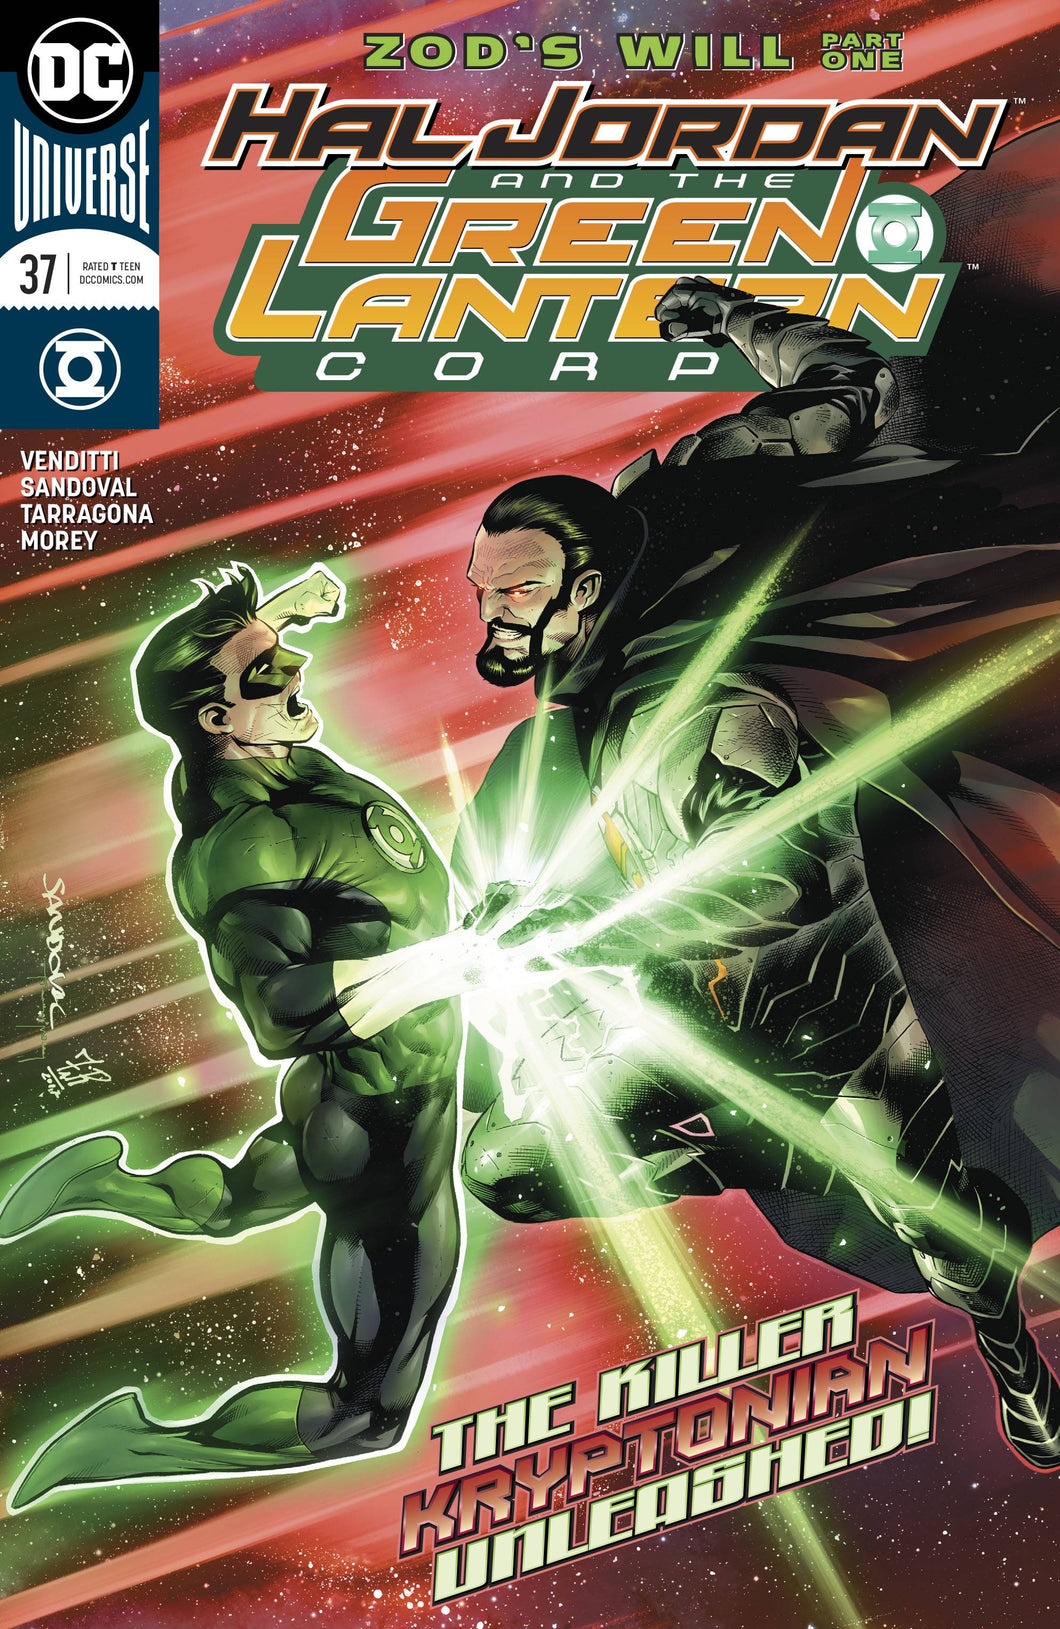 HAL JORDAN AND THE GREEN LANTERN CORPS #37  01/24/18 RD